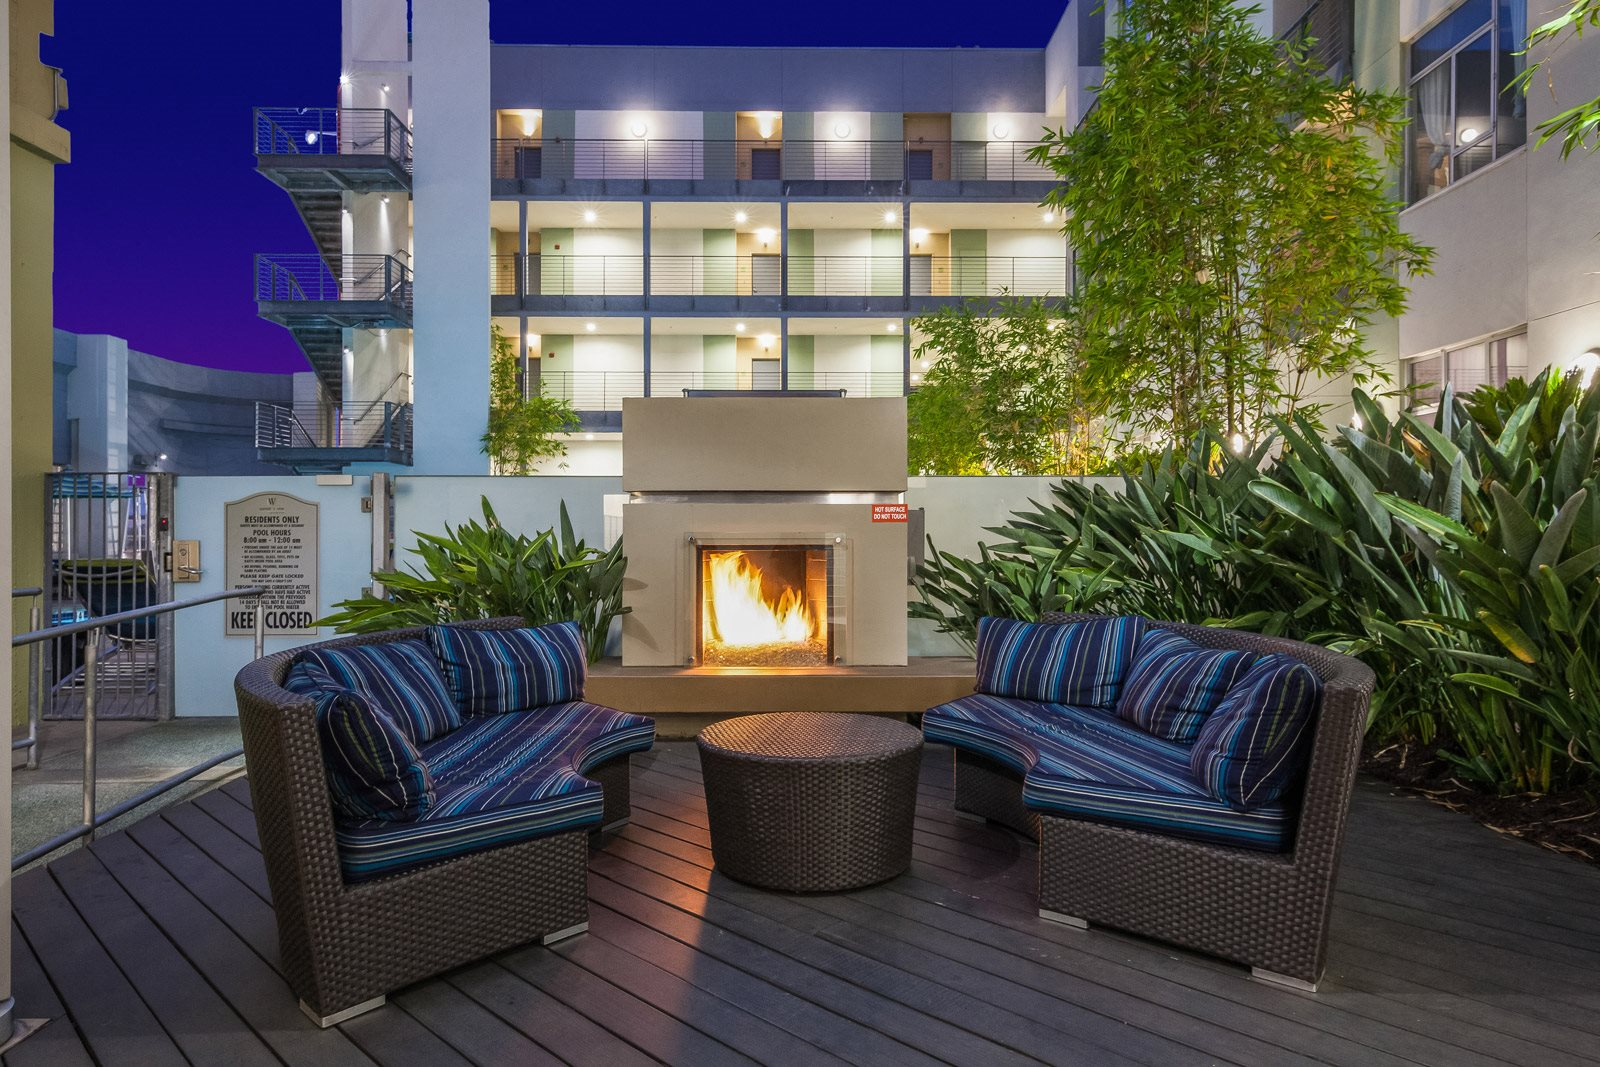 Relaxing, Outdoor Lounge Area with Fireplace at Sunset and Vine, Los Angeles, CA